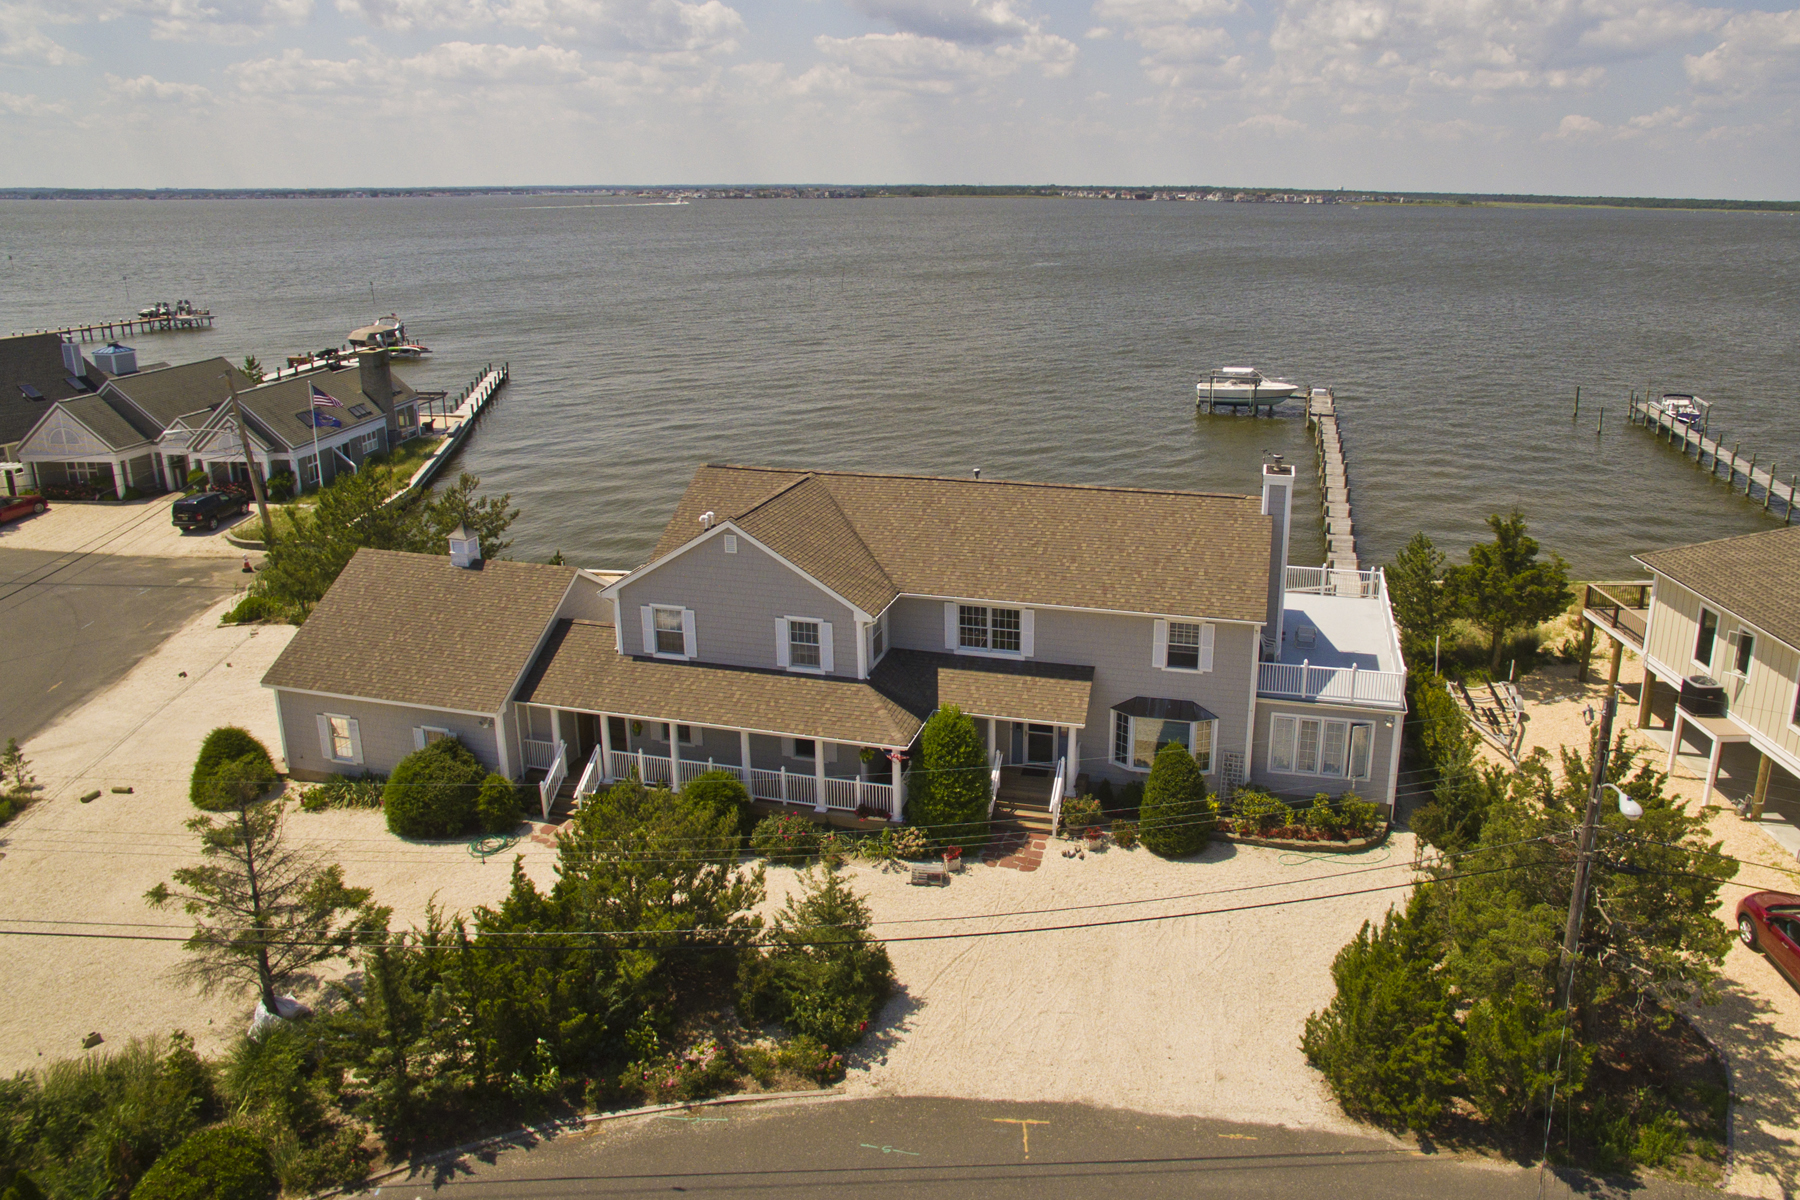 Single Family Home for Sale at Largest Bayfront in Normandy Beach! 497 Normandy Drive Normandy Beach, New Jersey 08739 United States